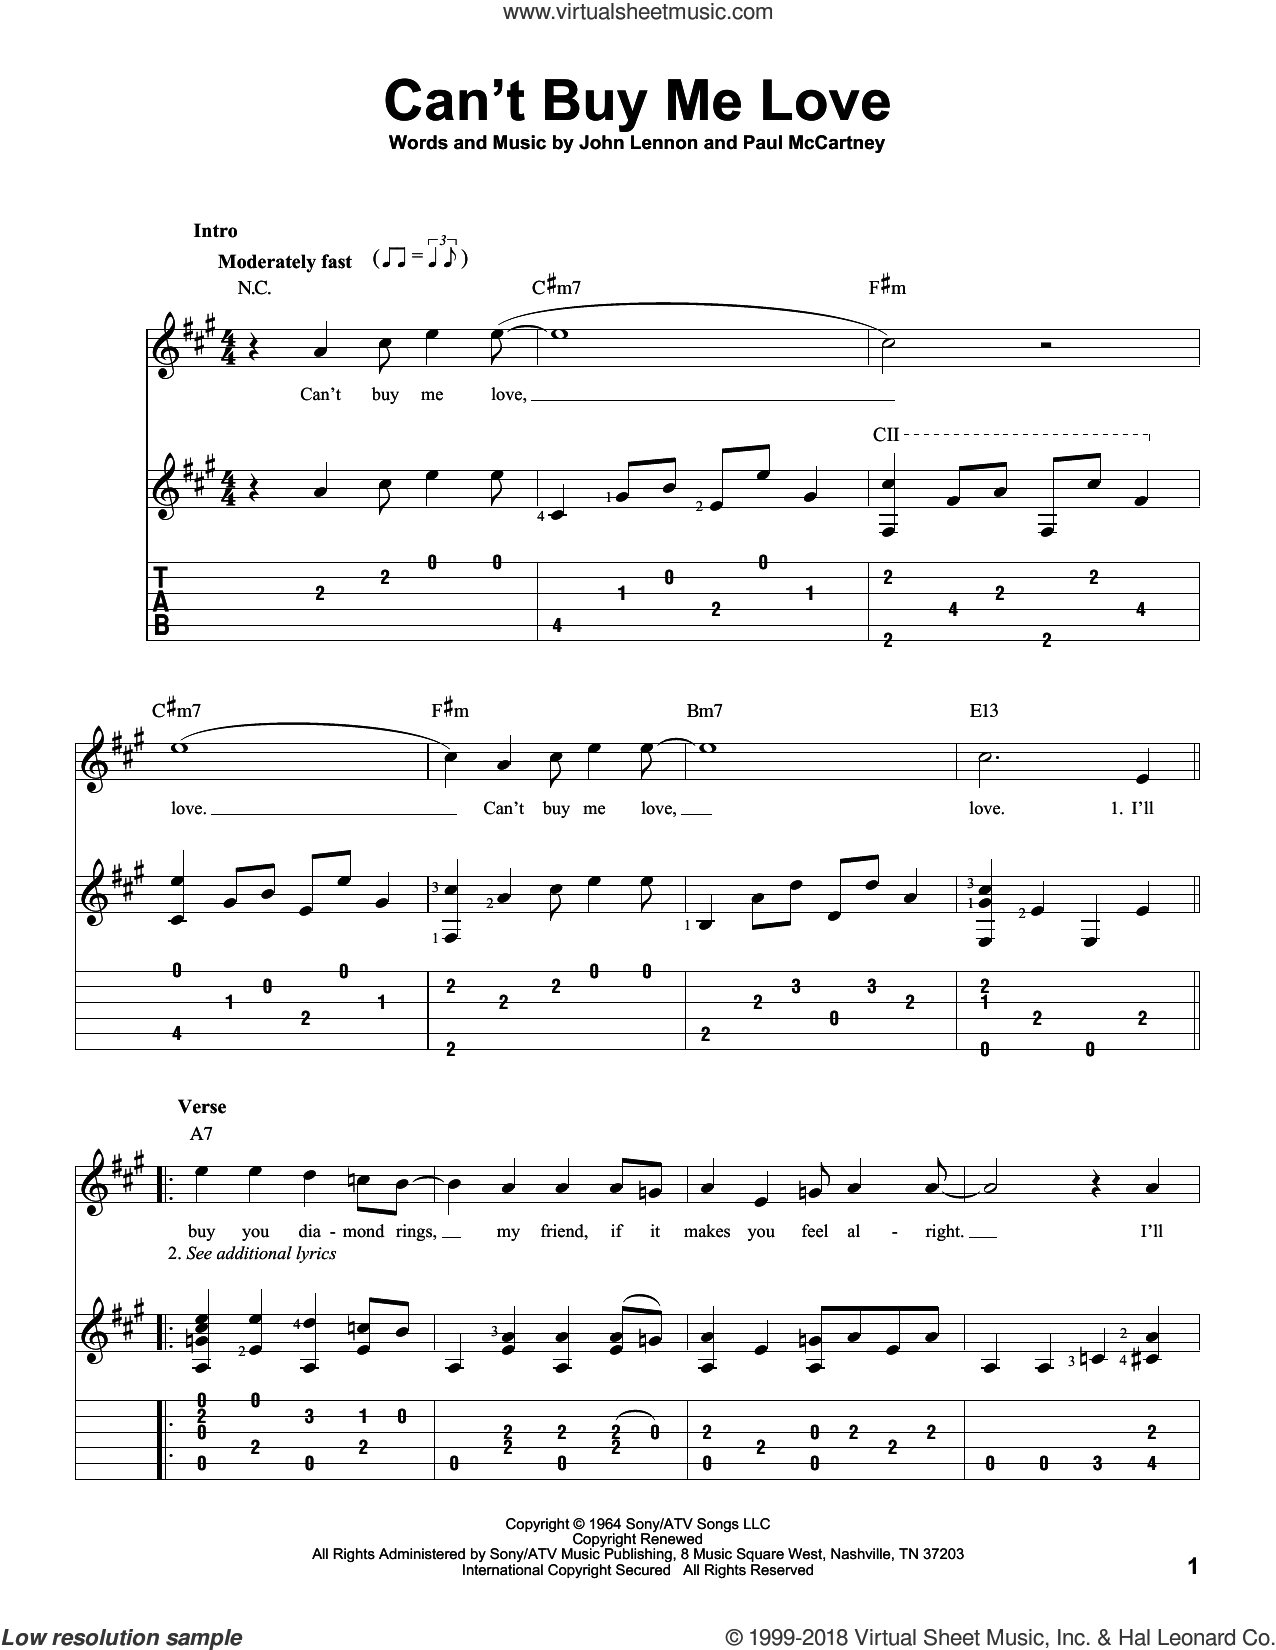 Can't Buy Me Love sheet music for guitar solo by The Beatles, John Lennon and Paul McCartney, intermediate guitar. Score Image Preview.